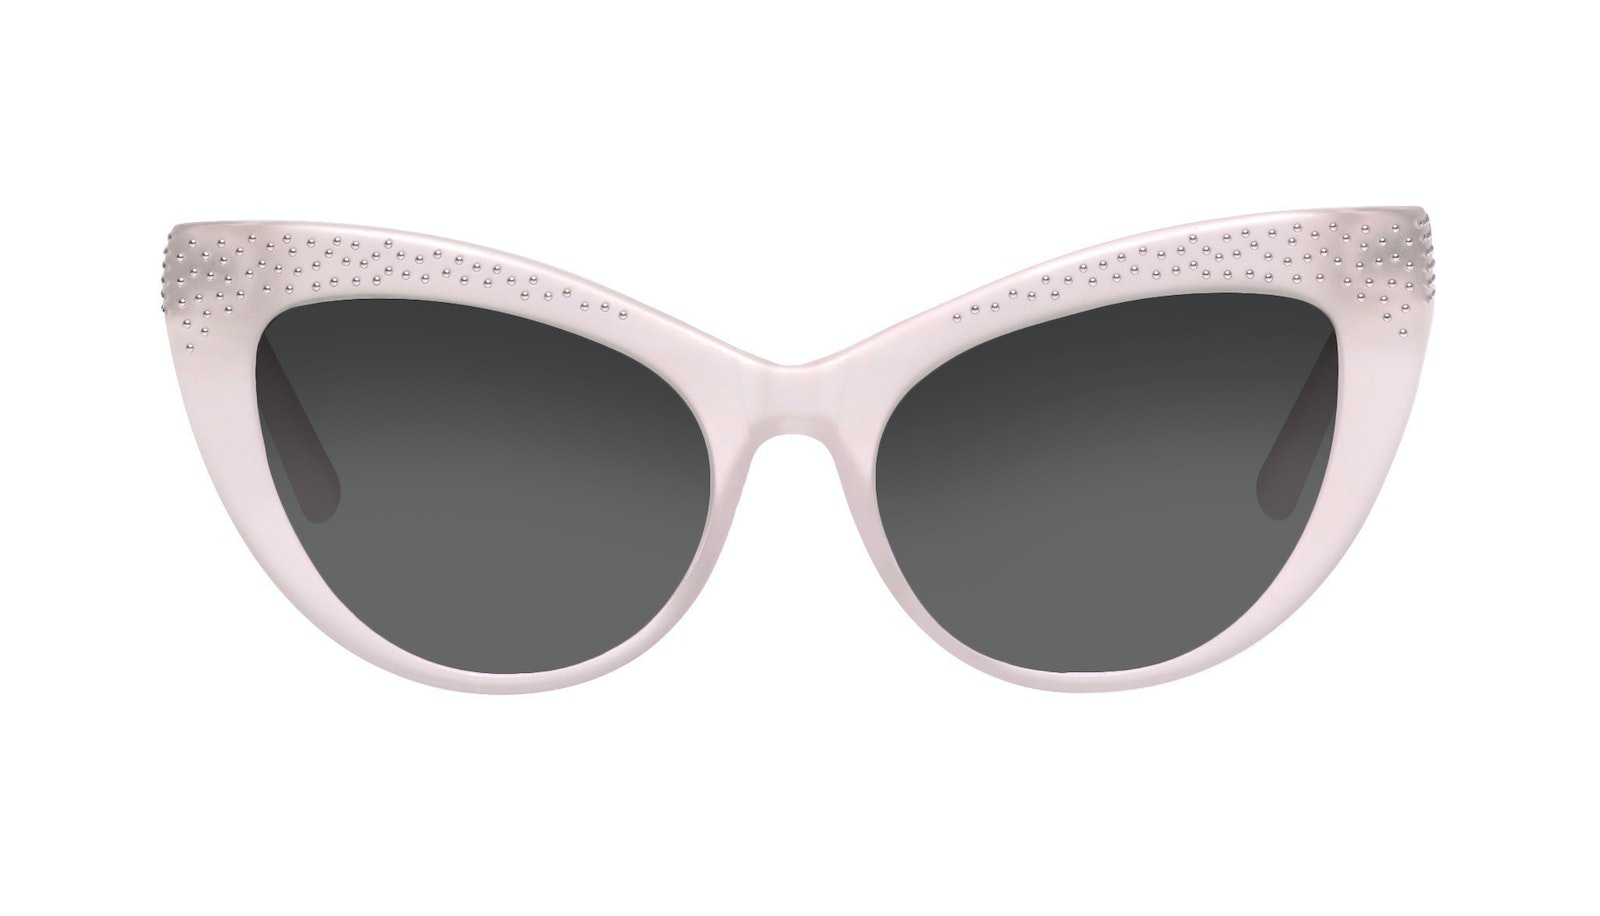 Affordable Fashion Glasses Cat Eye Daring Cateye Sunglasses Women Keiko Barbie Pink